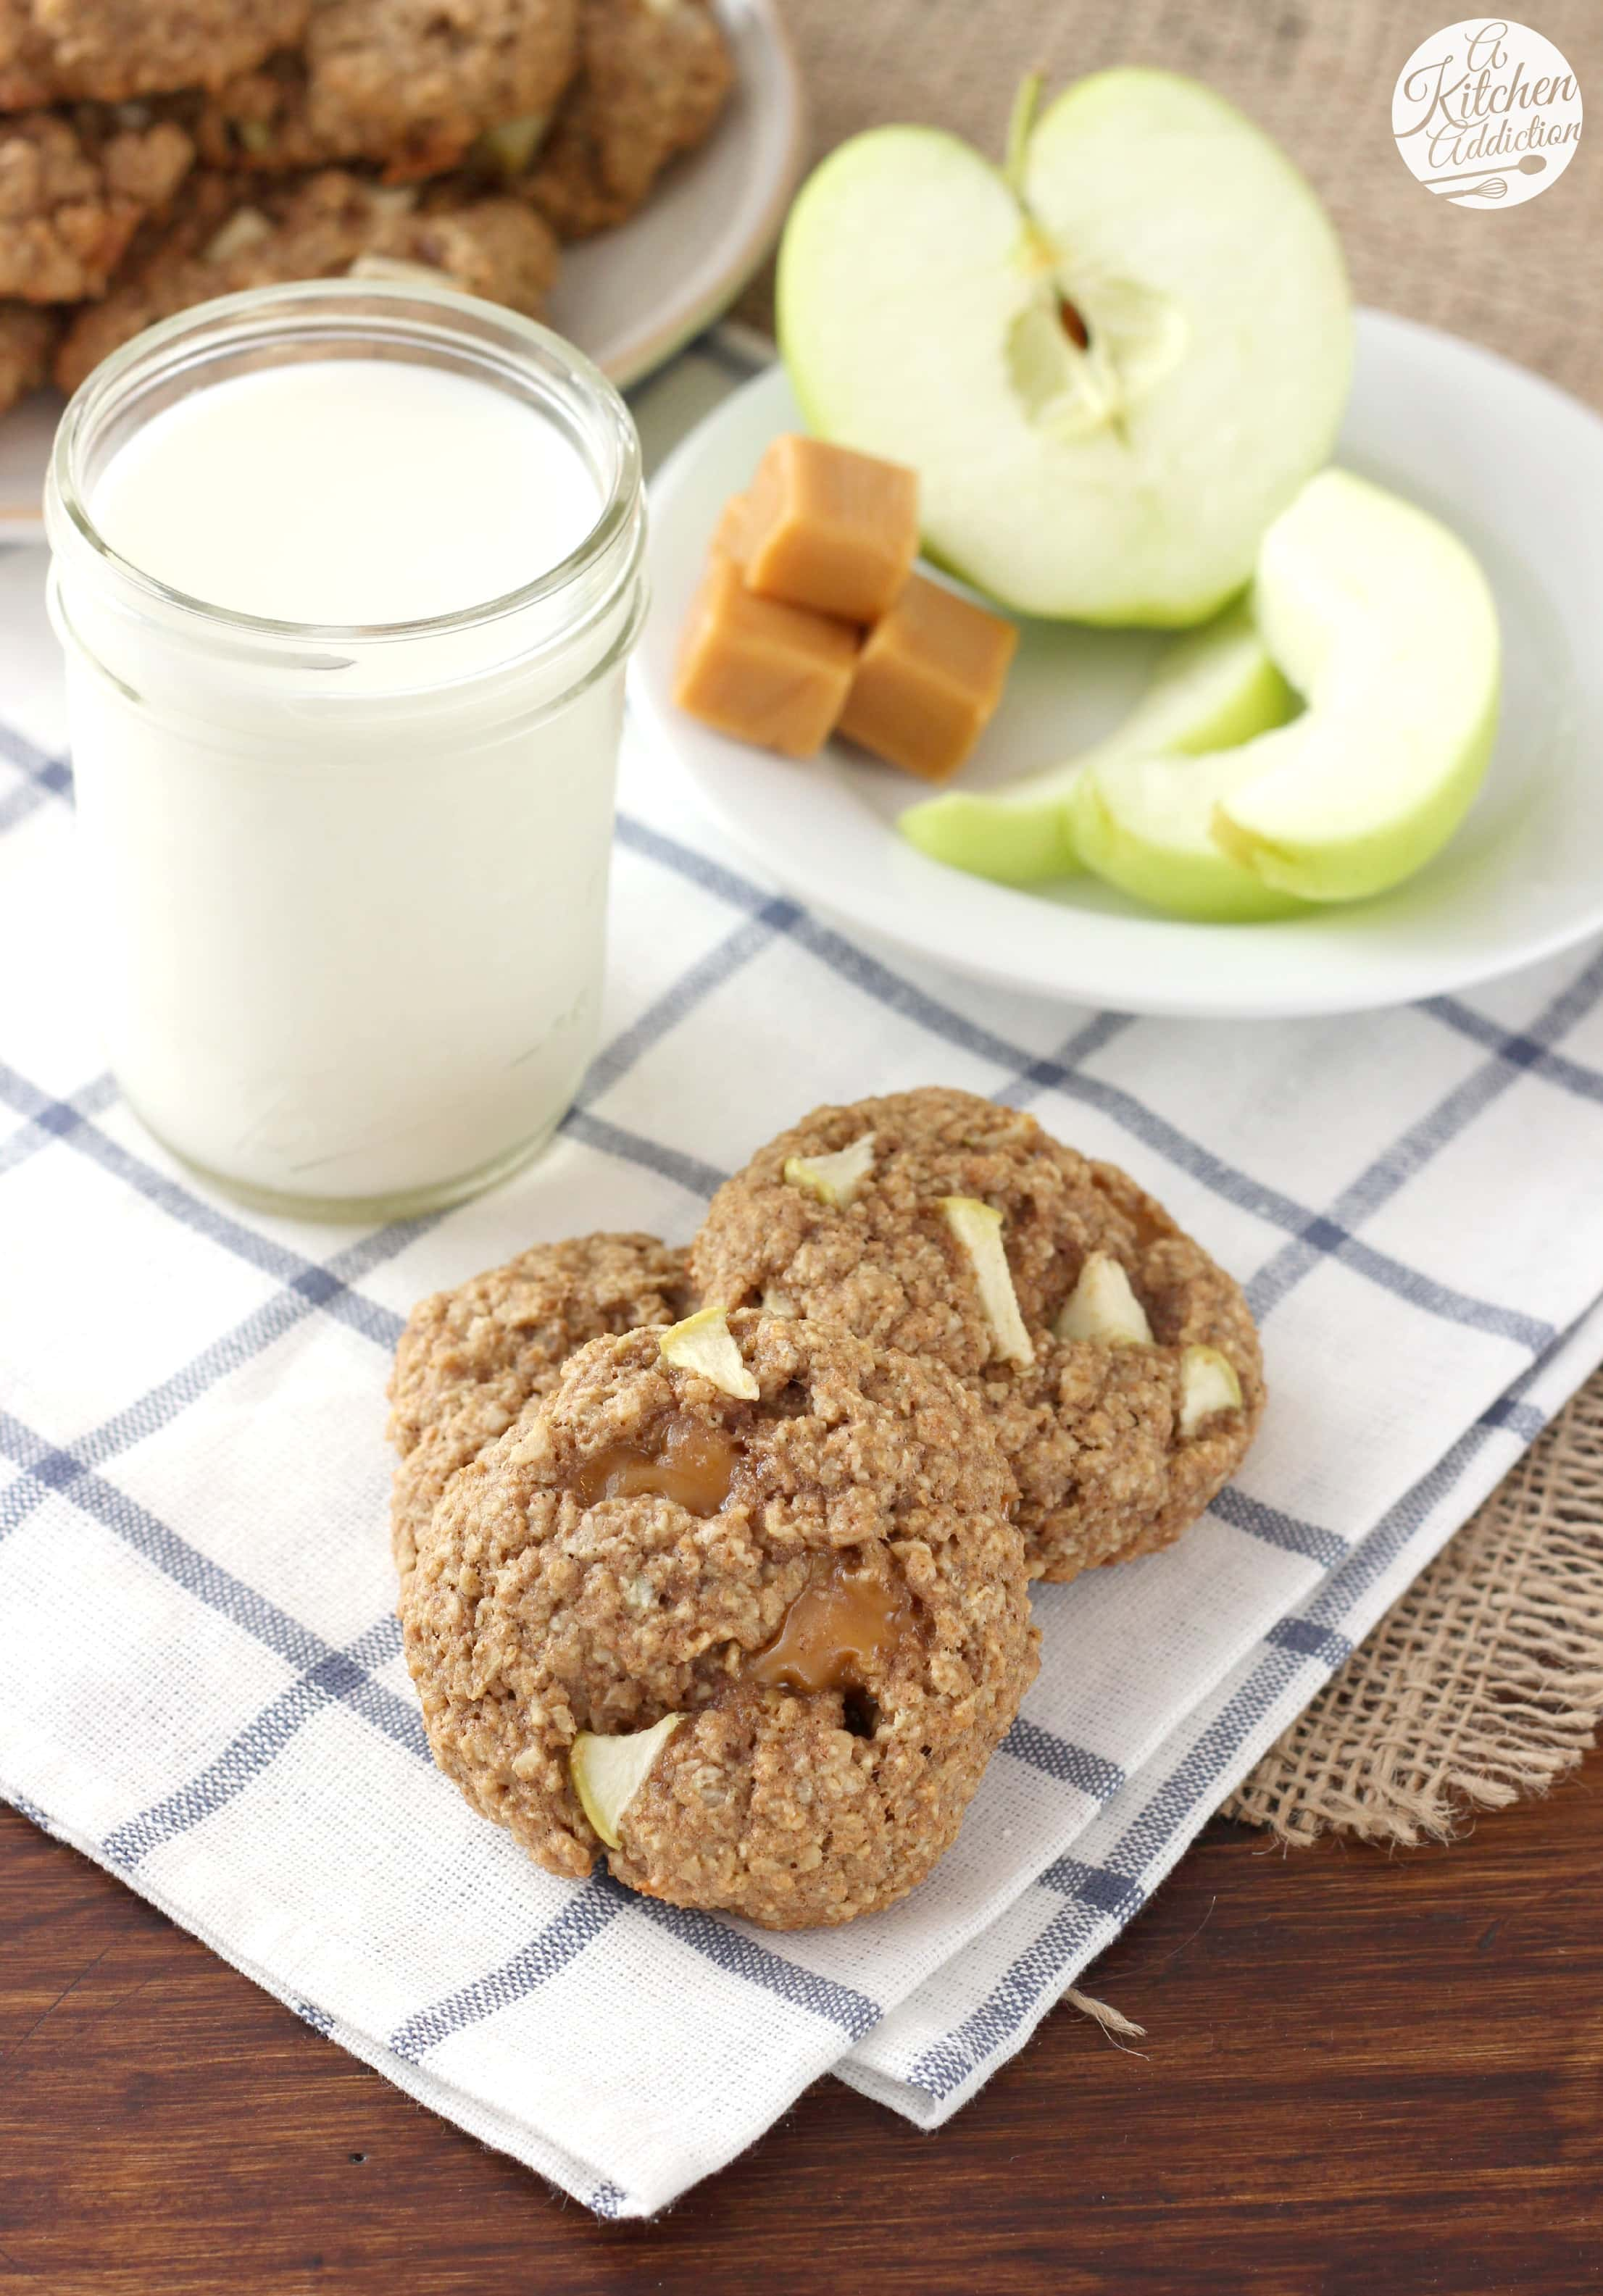 Caramel apple oatmeal cookies a kitchen addiction for A kitchen addiction